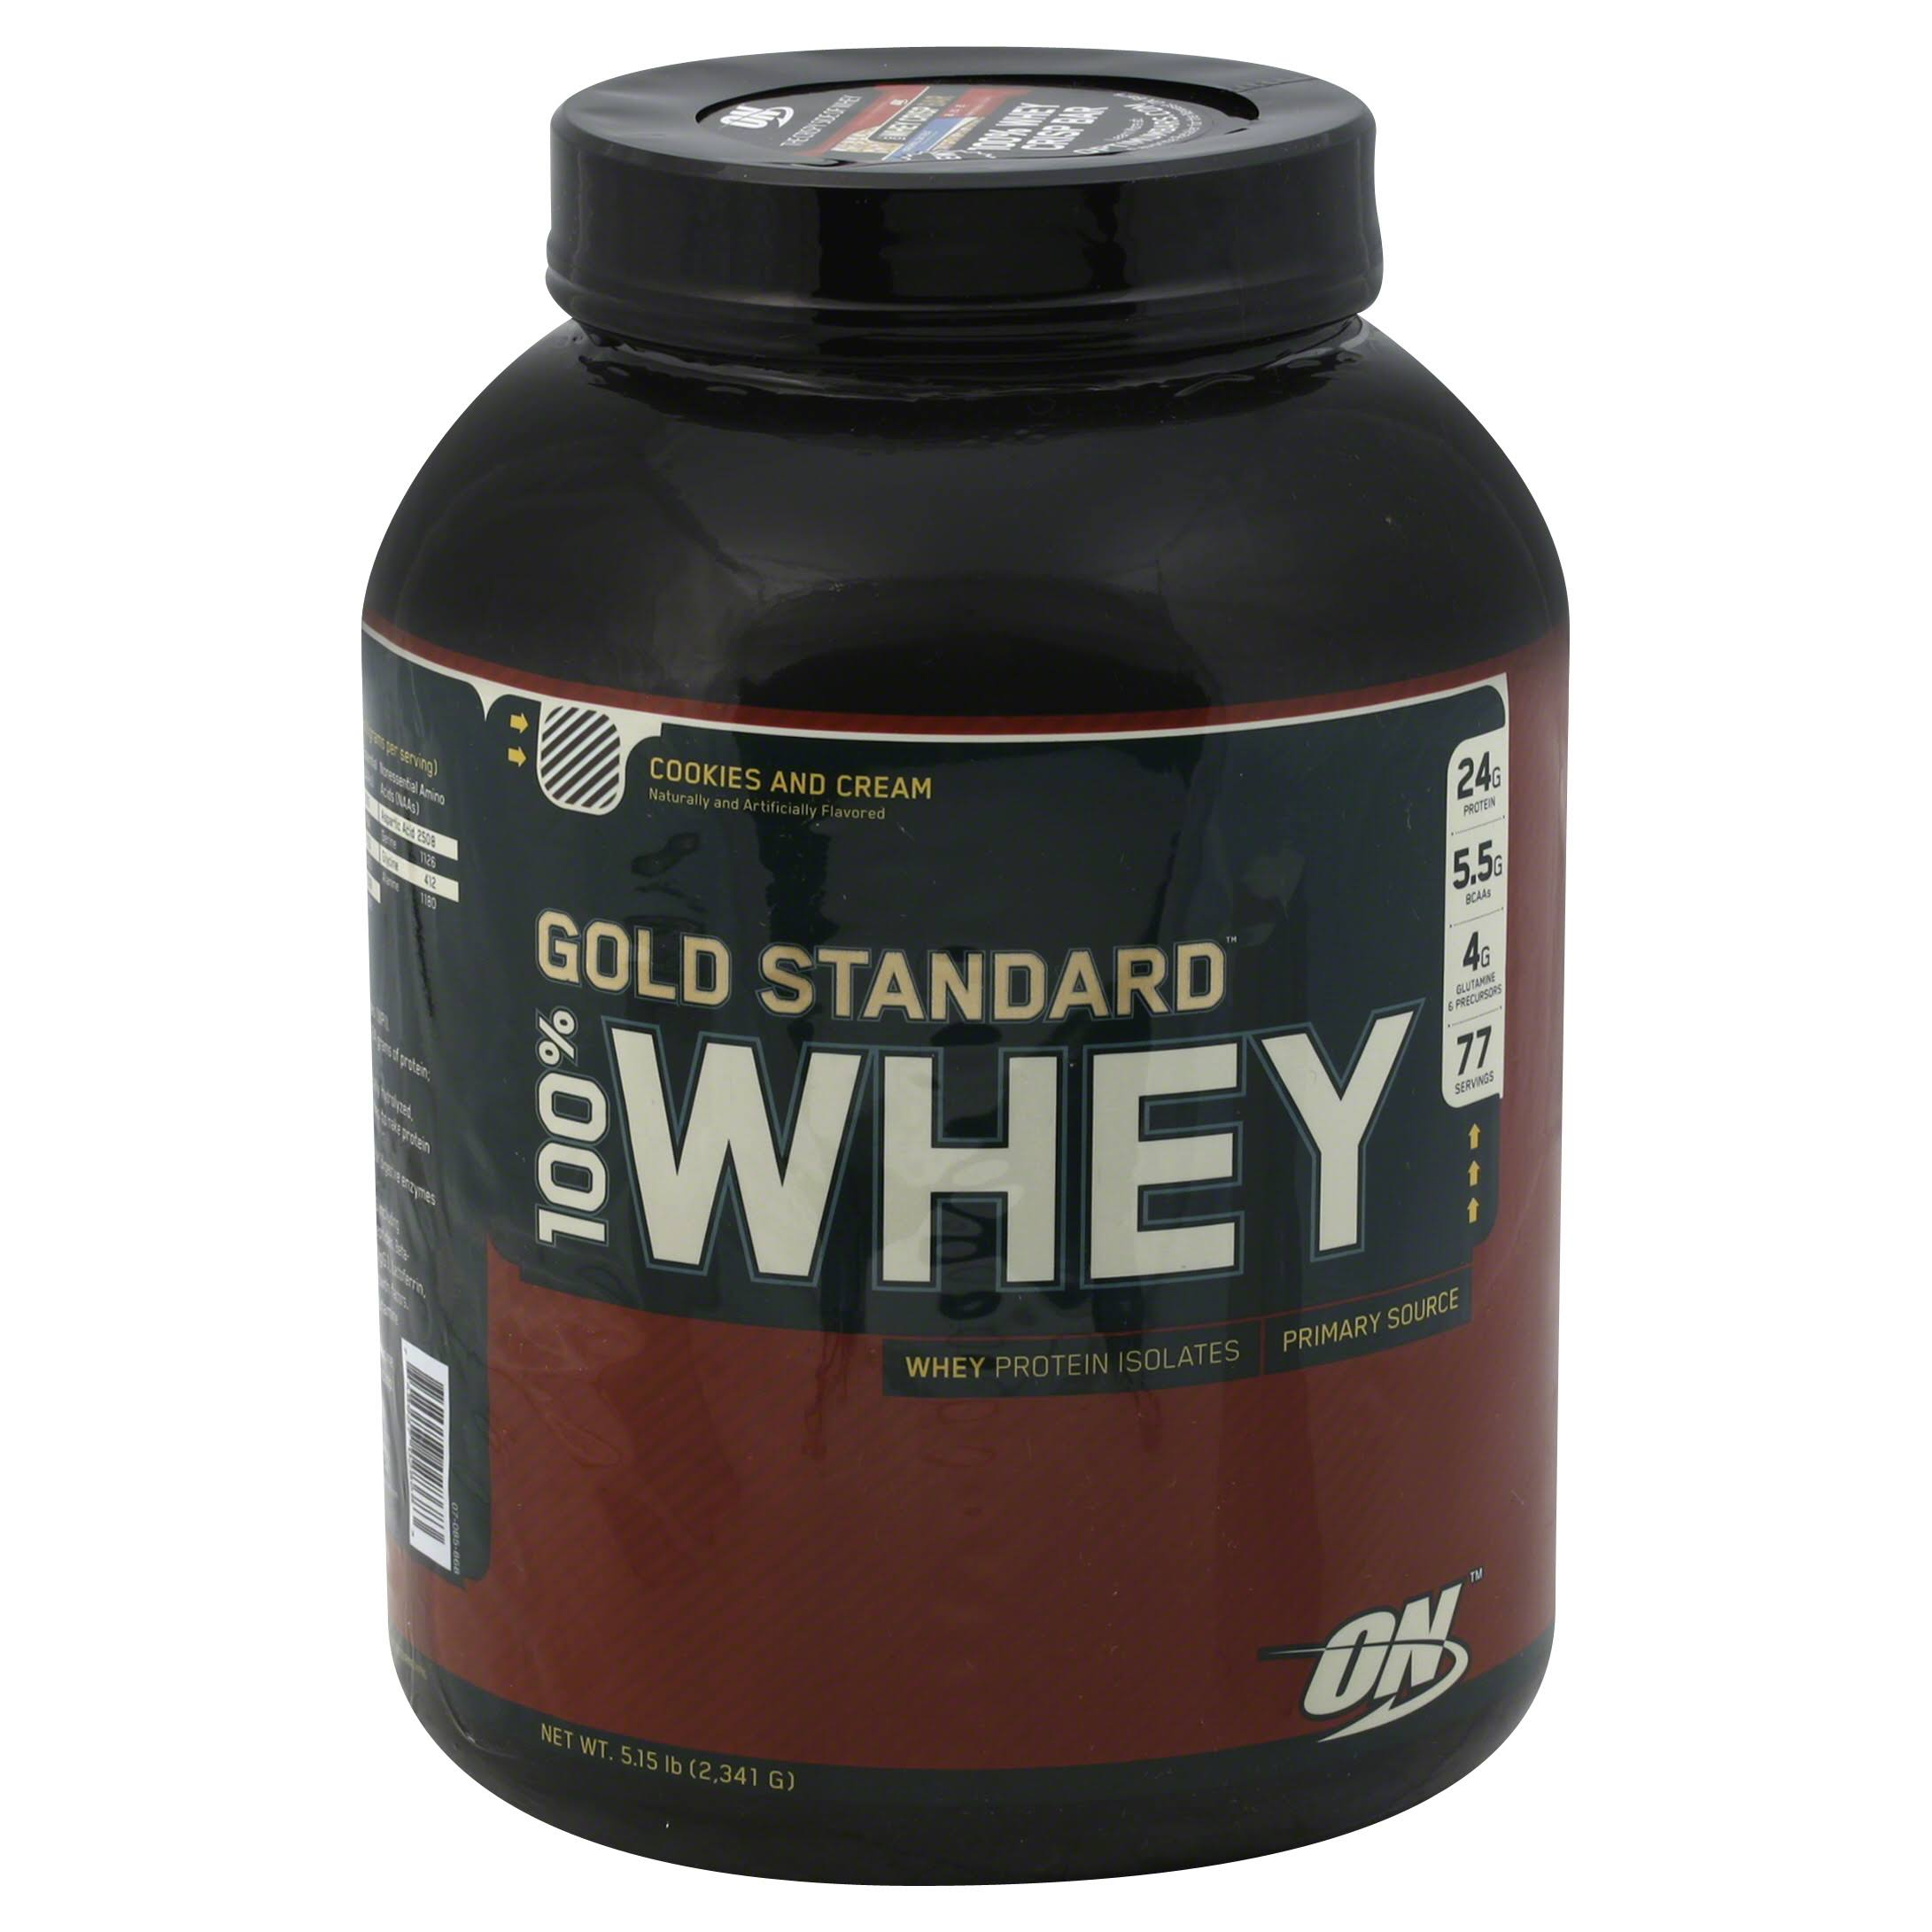 Optimum Nutrition Gold Standard 100% Whey Dietary Supplement - Cookies and Cream, 5lb